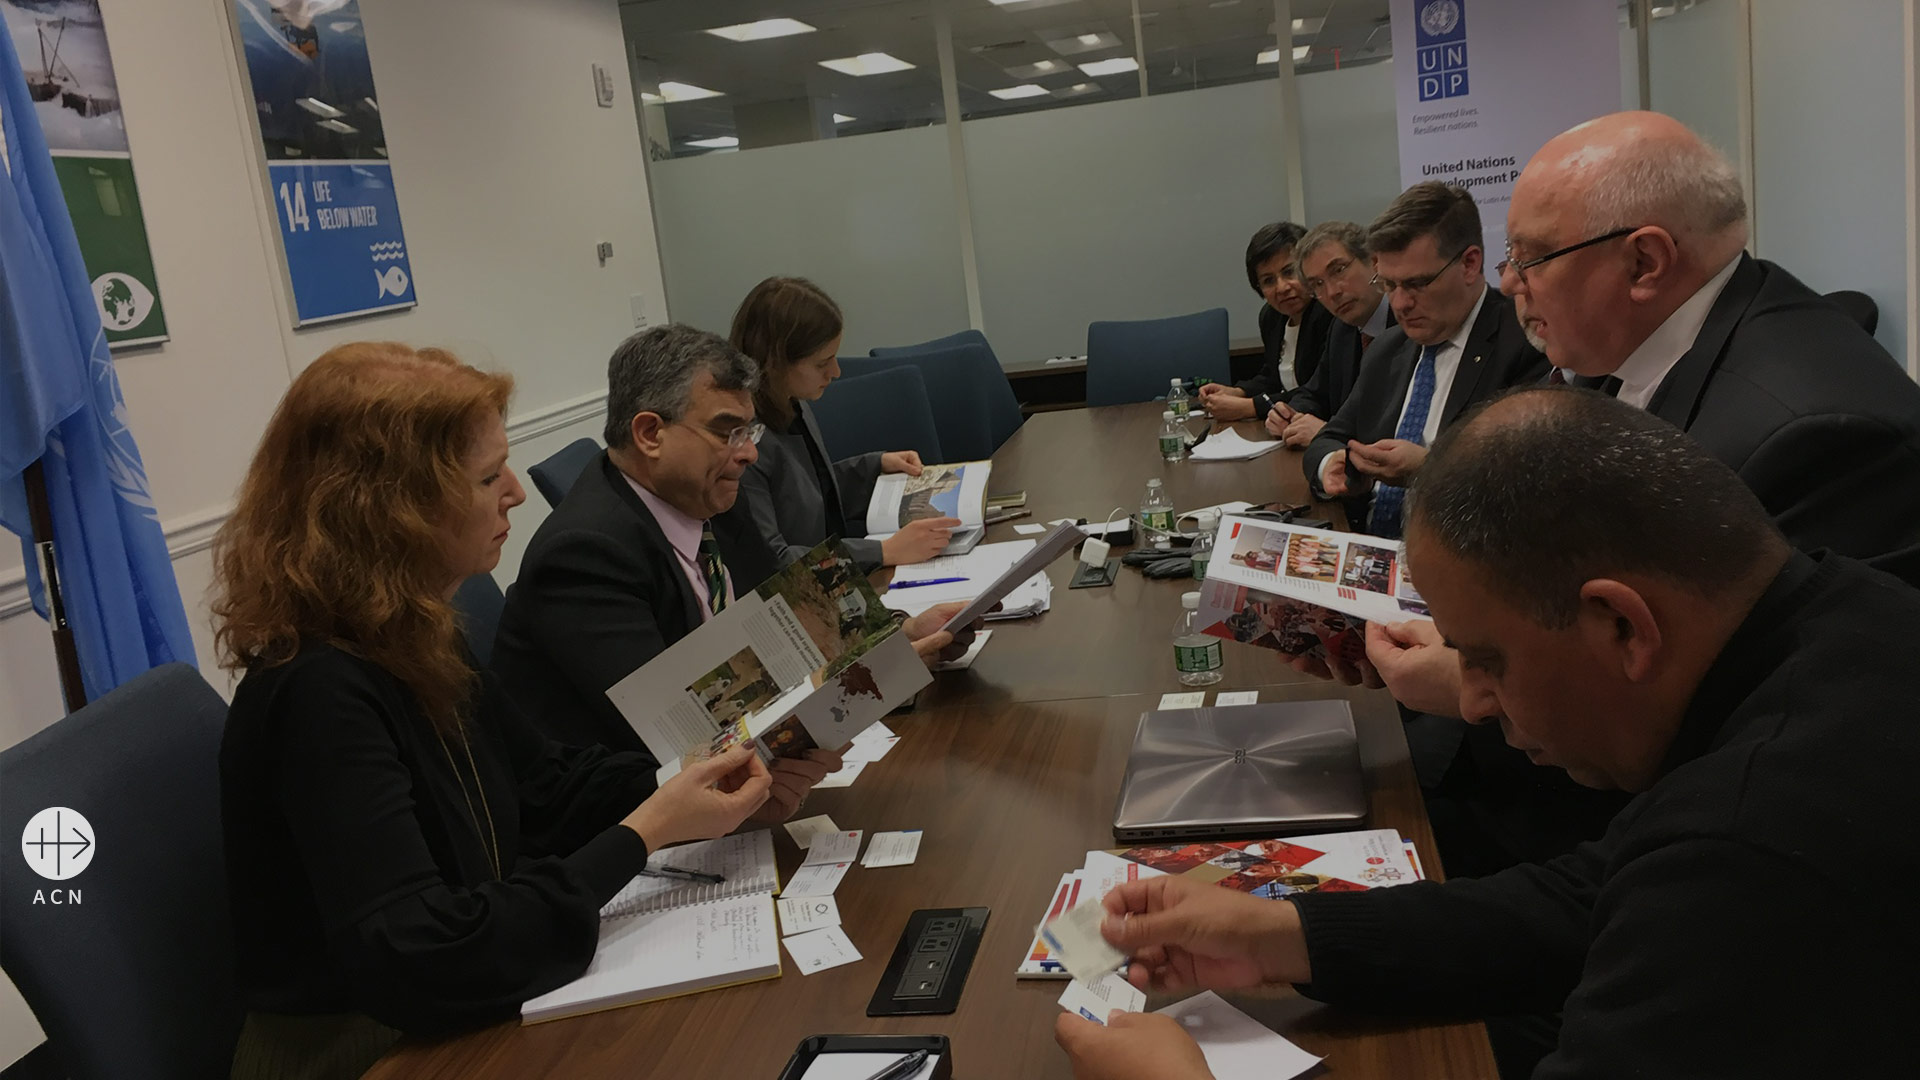 UNDP and ACN: High level meeting to channel more help to suffering Christians in the Nineveh Plains